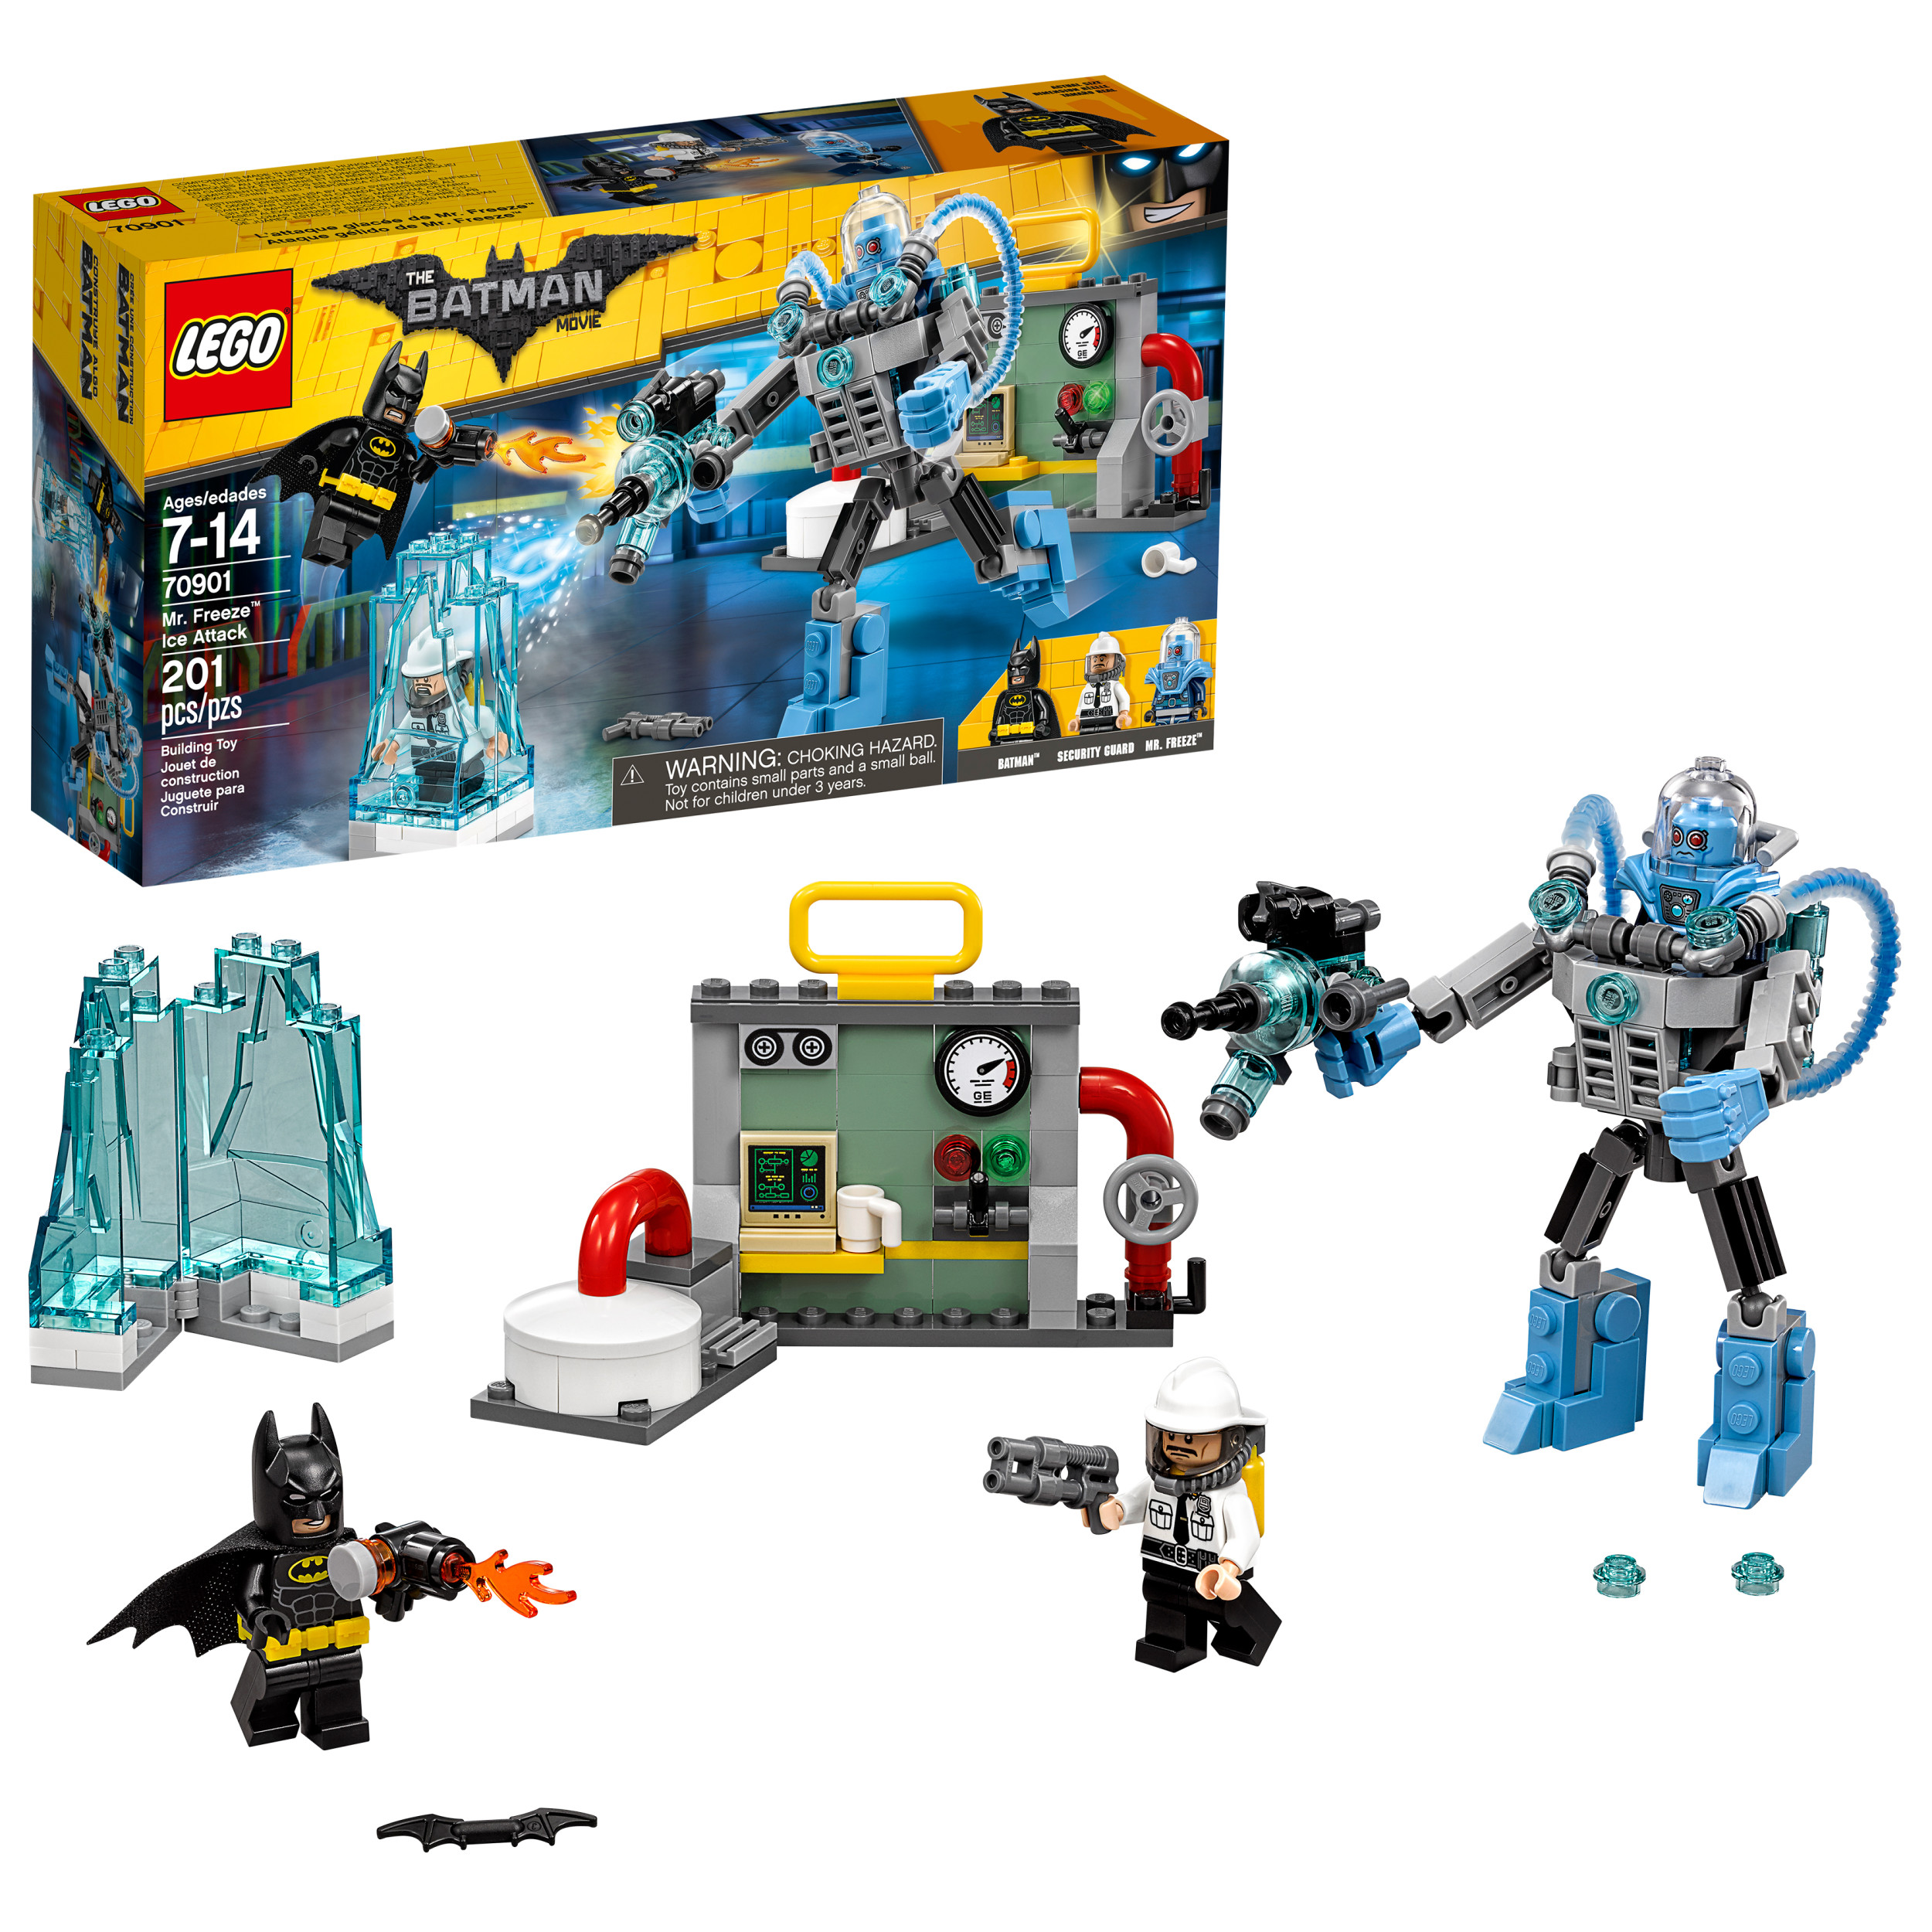 The LEGO Batman Movie - Mr. Freeze Ice Attack (70901) - Walmart.com